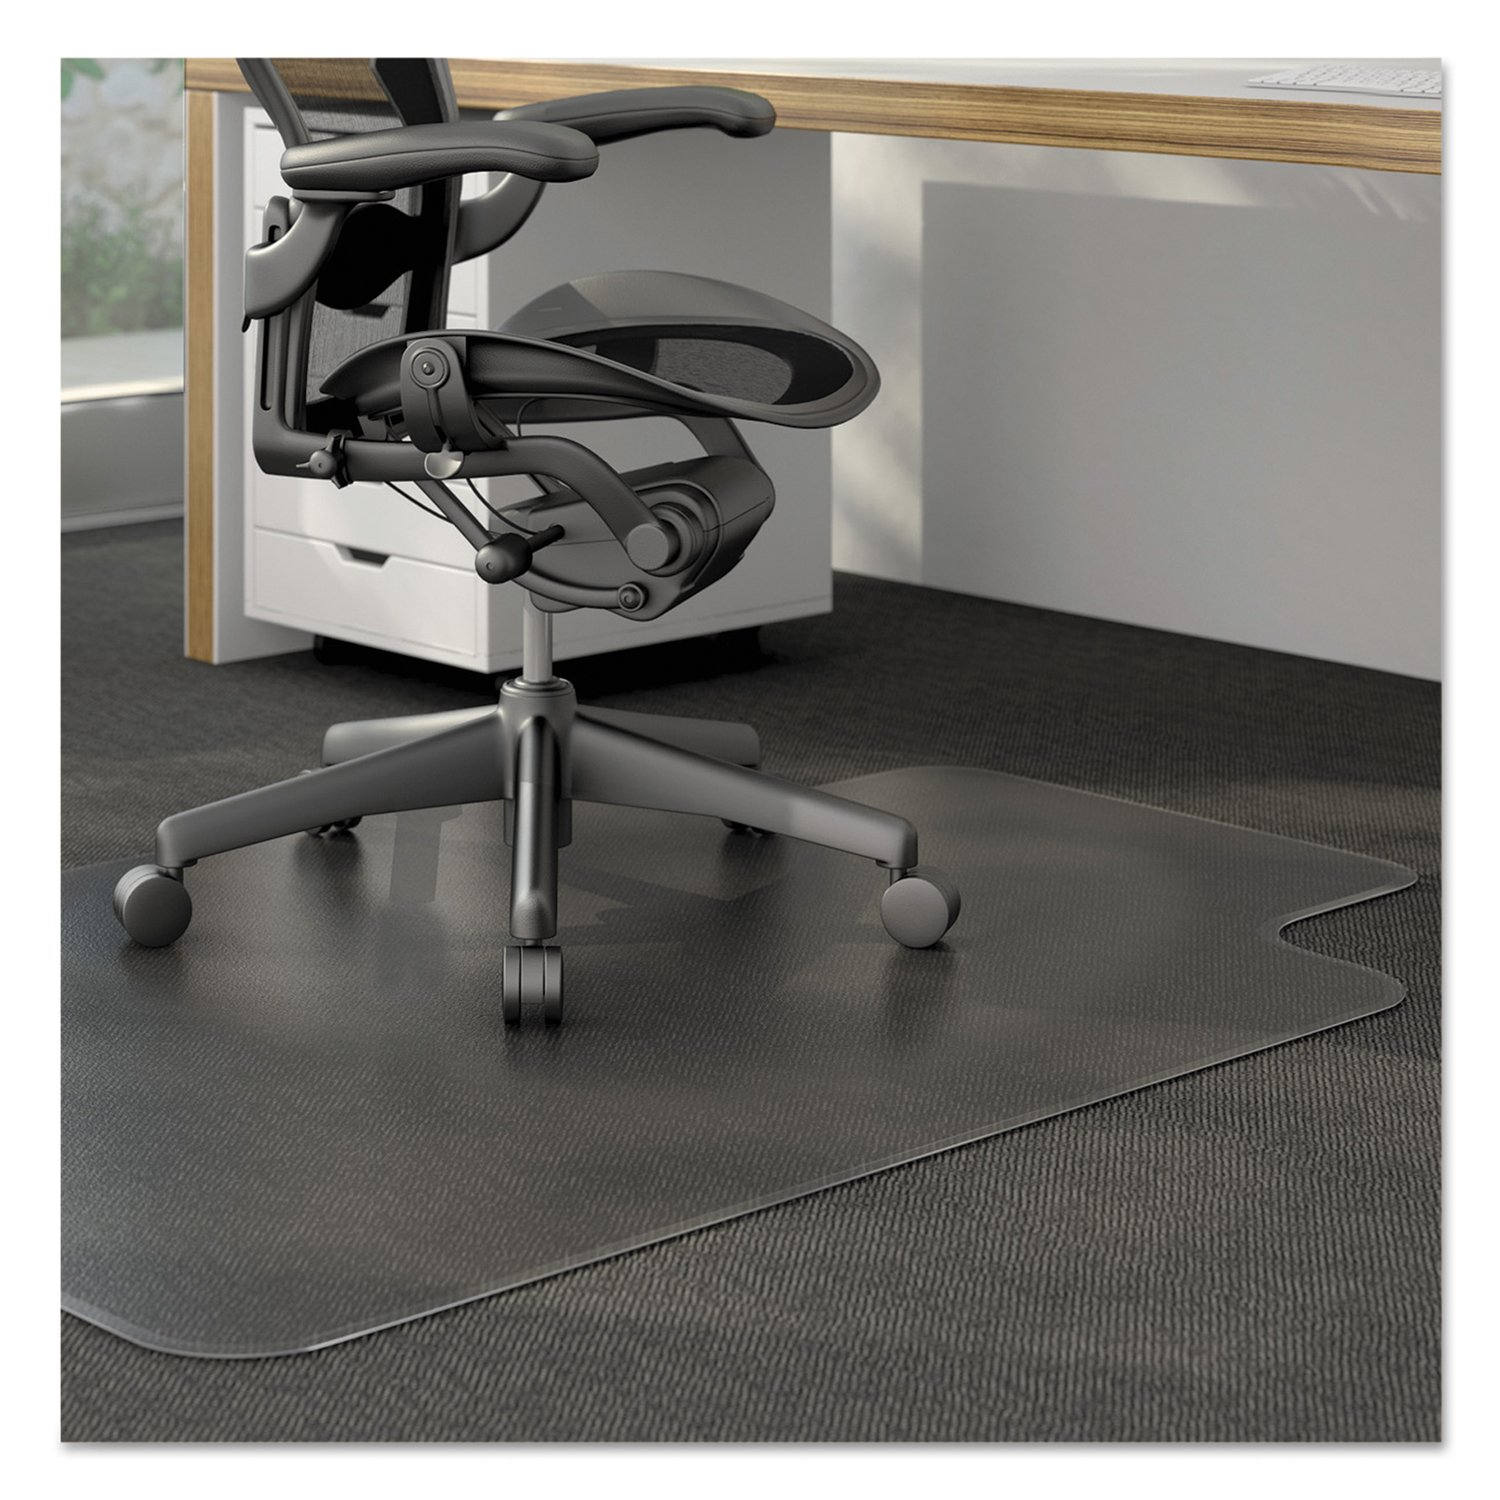 Amazon Universal Cleated Chair Mat for Low and Medium